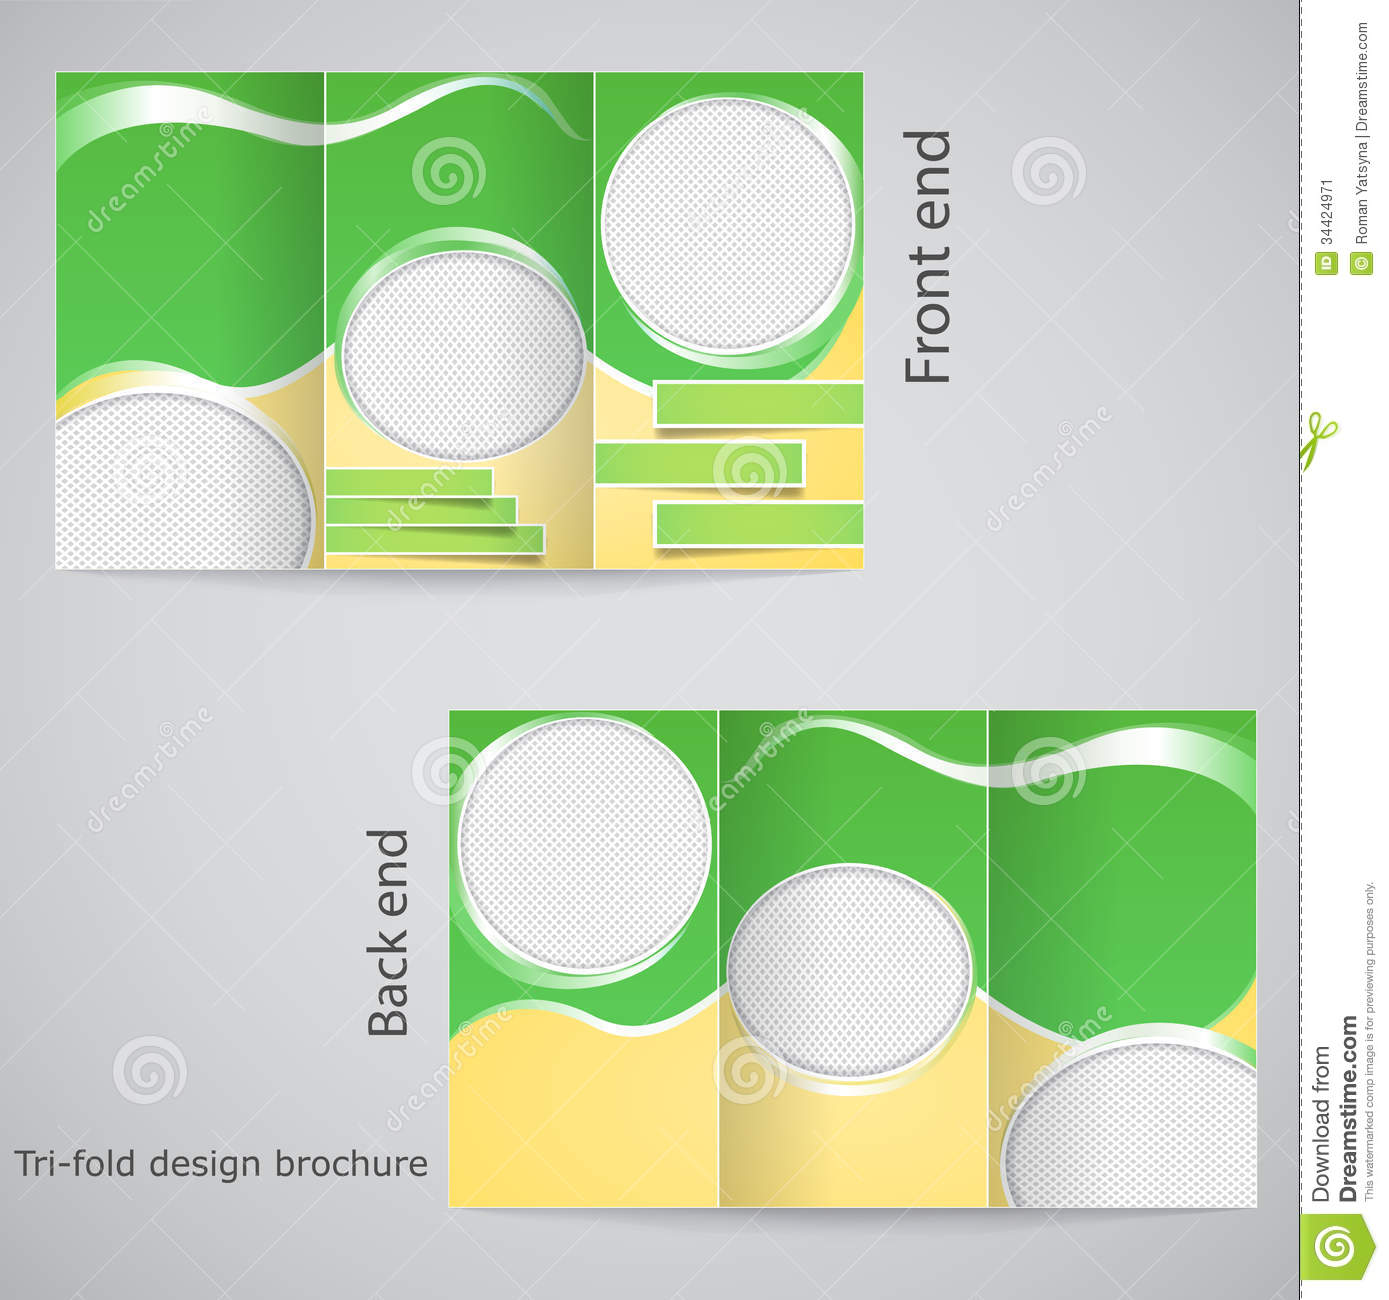 free template for tri fold brochure - tri fold brochure design stock vector illustration of